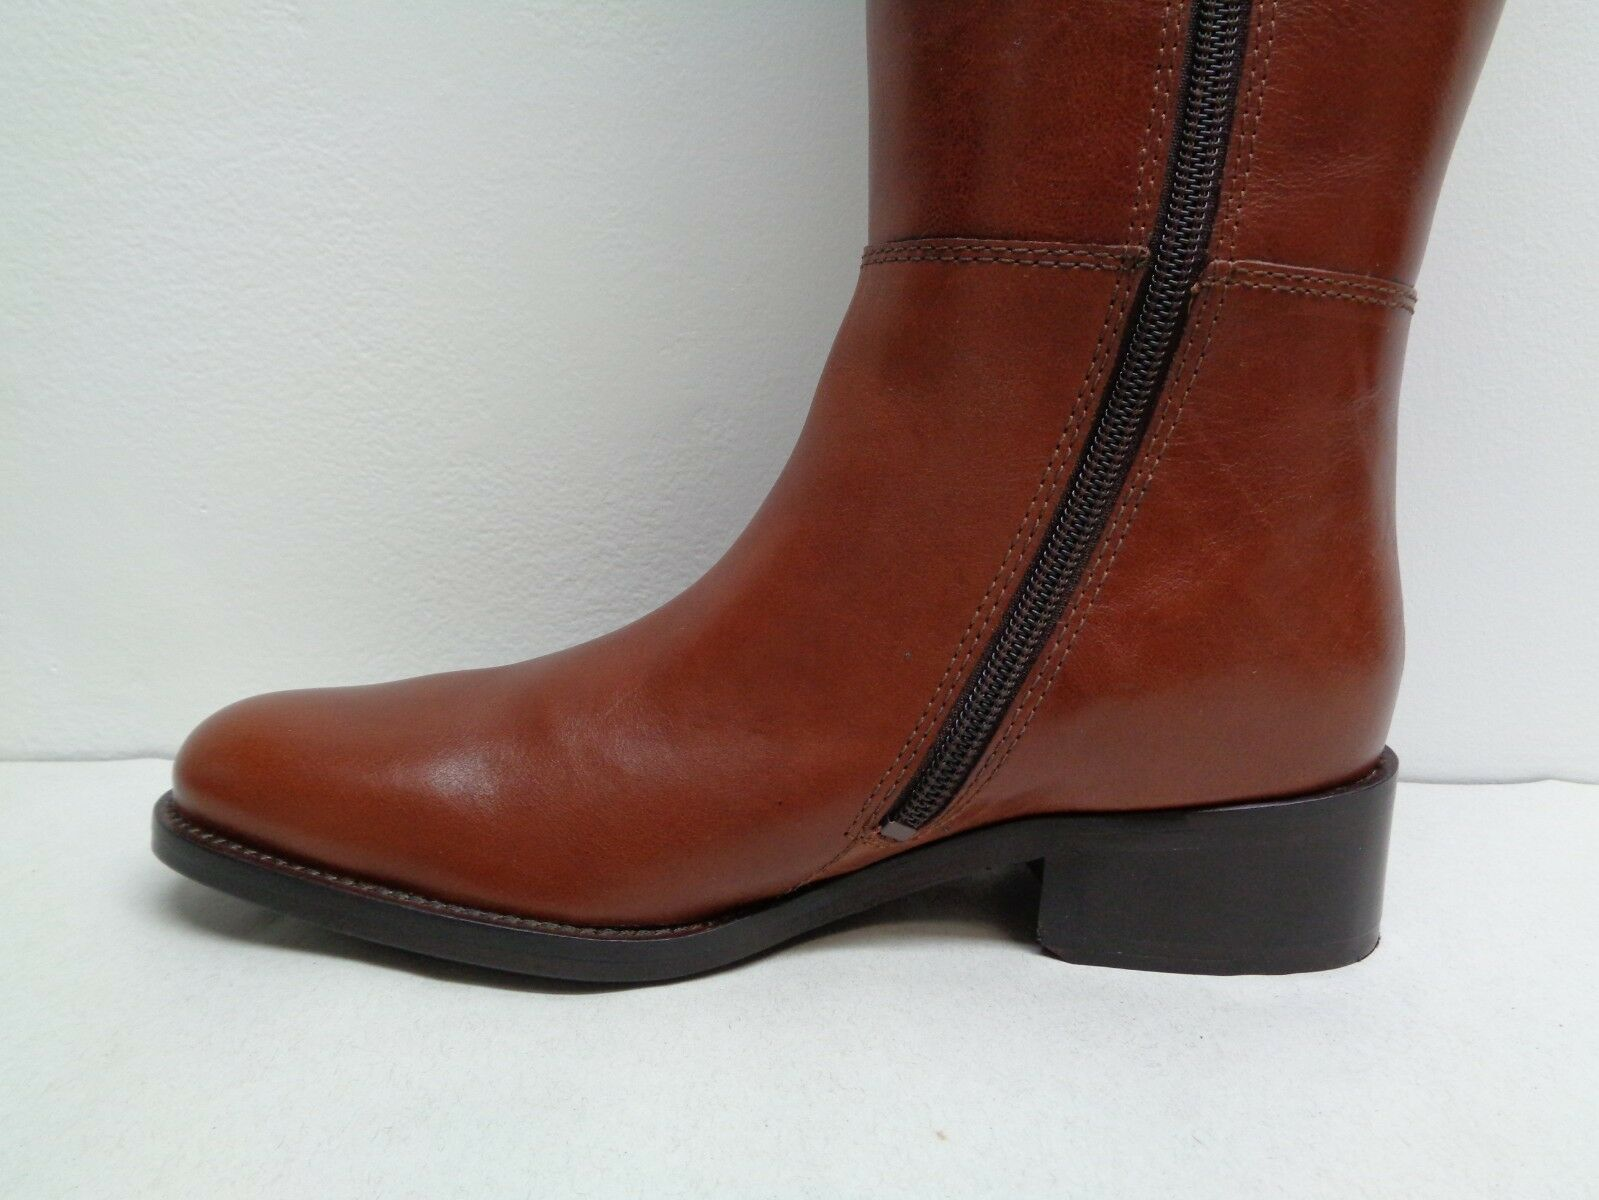 Johnston & Murphy Size 6 M SARI CHAIN Brown Leather Leather Leather Boots New Womens shoes 773b90